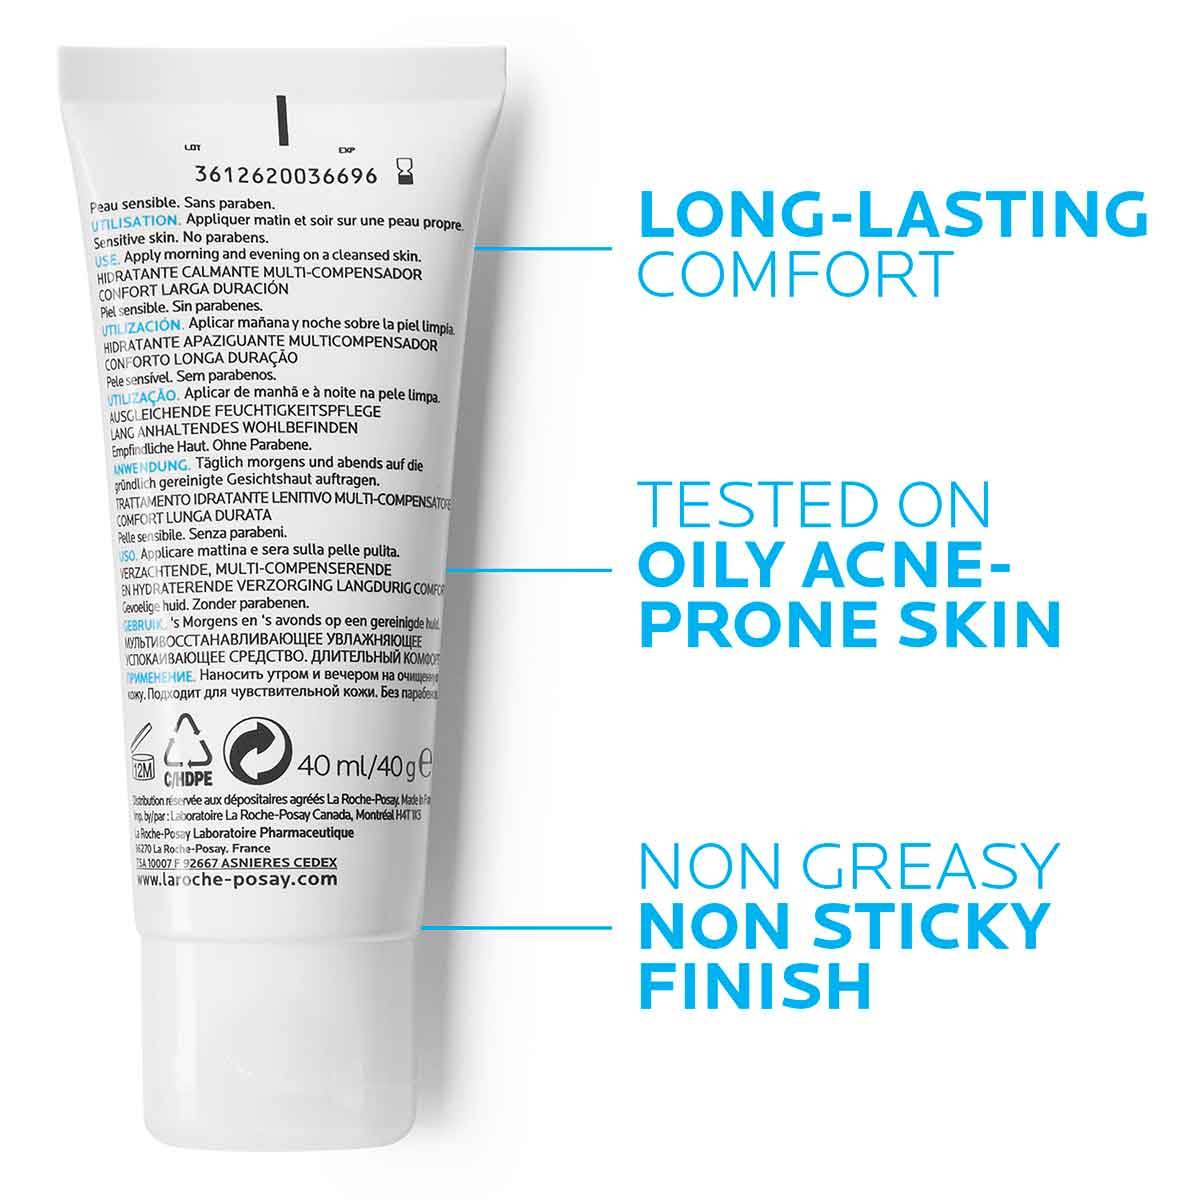 La Roche Posay ProductPage Acne Effaclar H Soothing Moisturizer 40ml 3